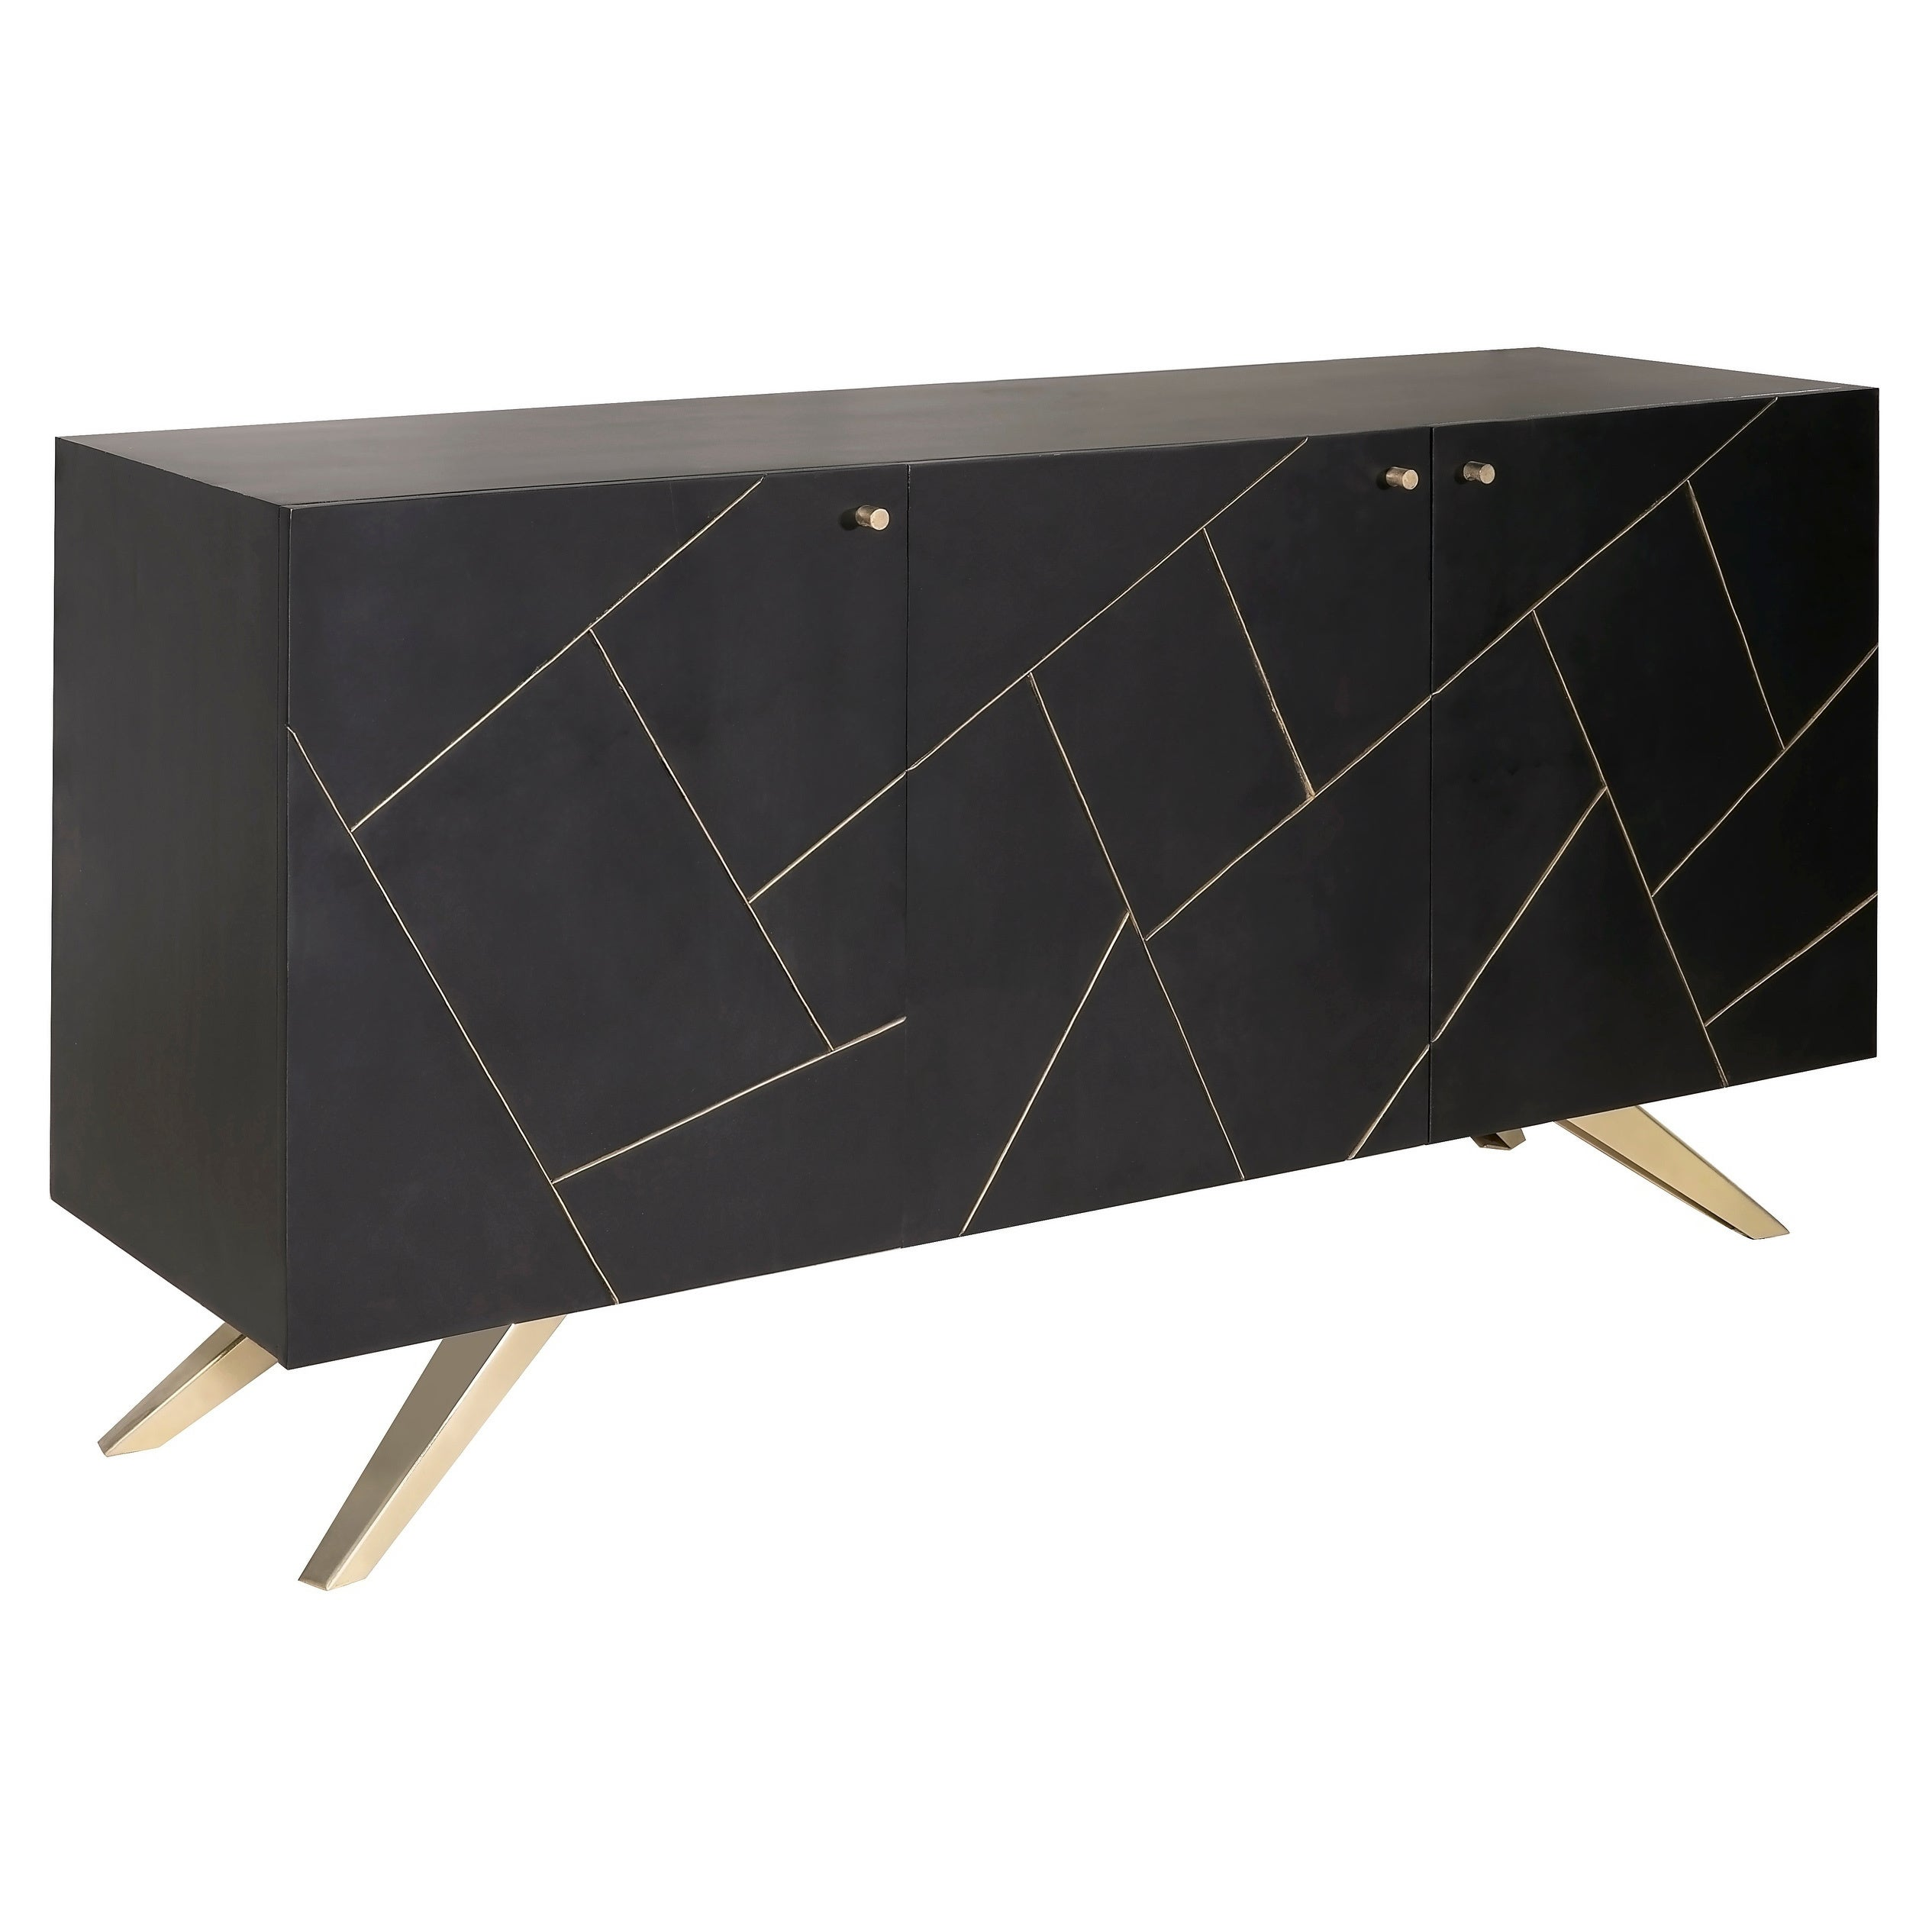 Picture of: Shop Black Friday Deals On Magnus Glam Brown And Gold Sideboard Buffet Overstock 22120379